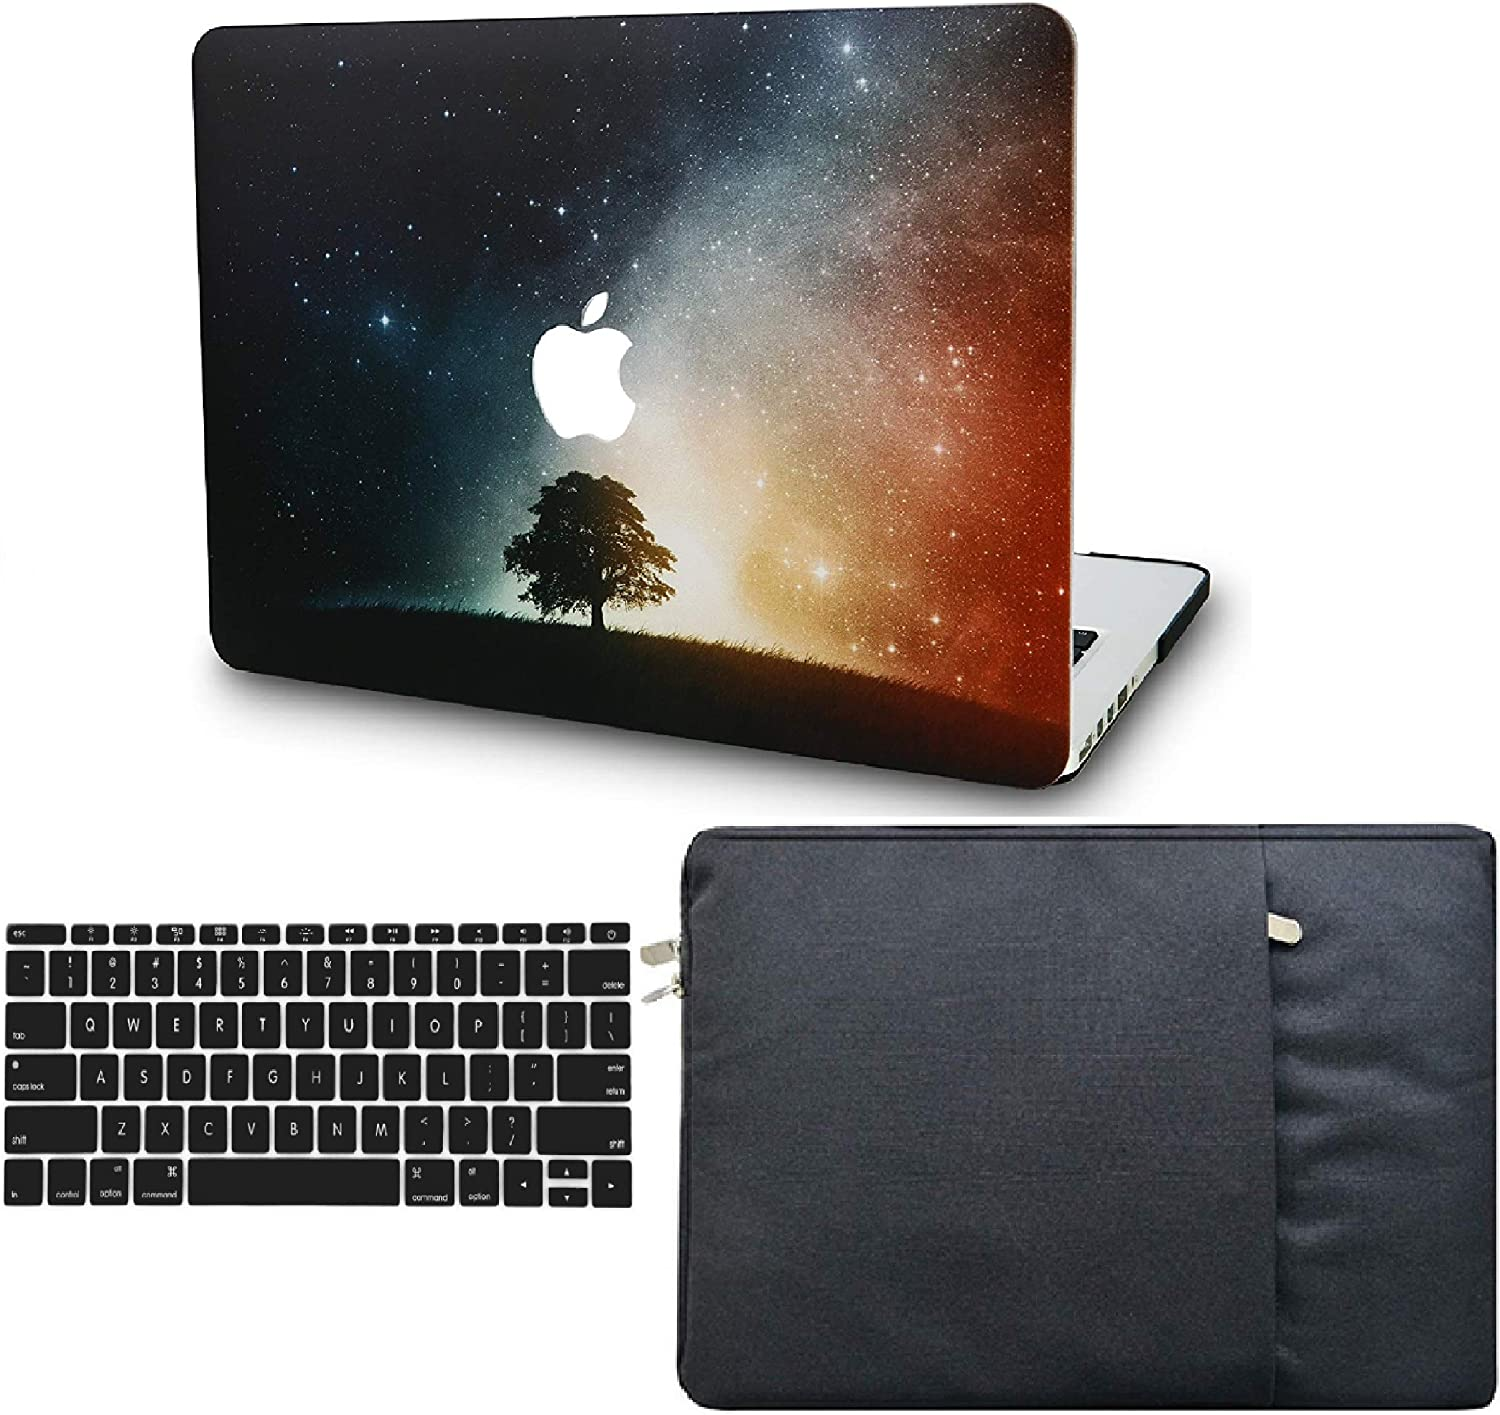 "KECC Laptop Case for MacBook Pro 13"" (2020/2019/2018/2017/2016, with/Without Touch Bar) w/Keyboard Cover + Sleeve Plastic Hard Shell Case A2159/A1989/A1706/A1708 3 in 1 Bundle (Lonely Tree)"